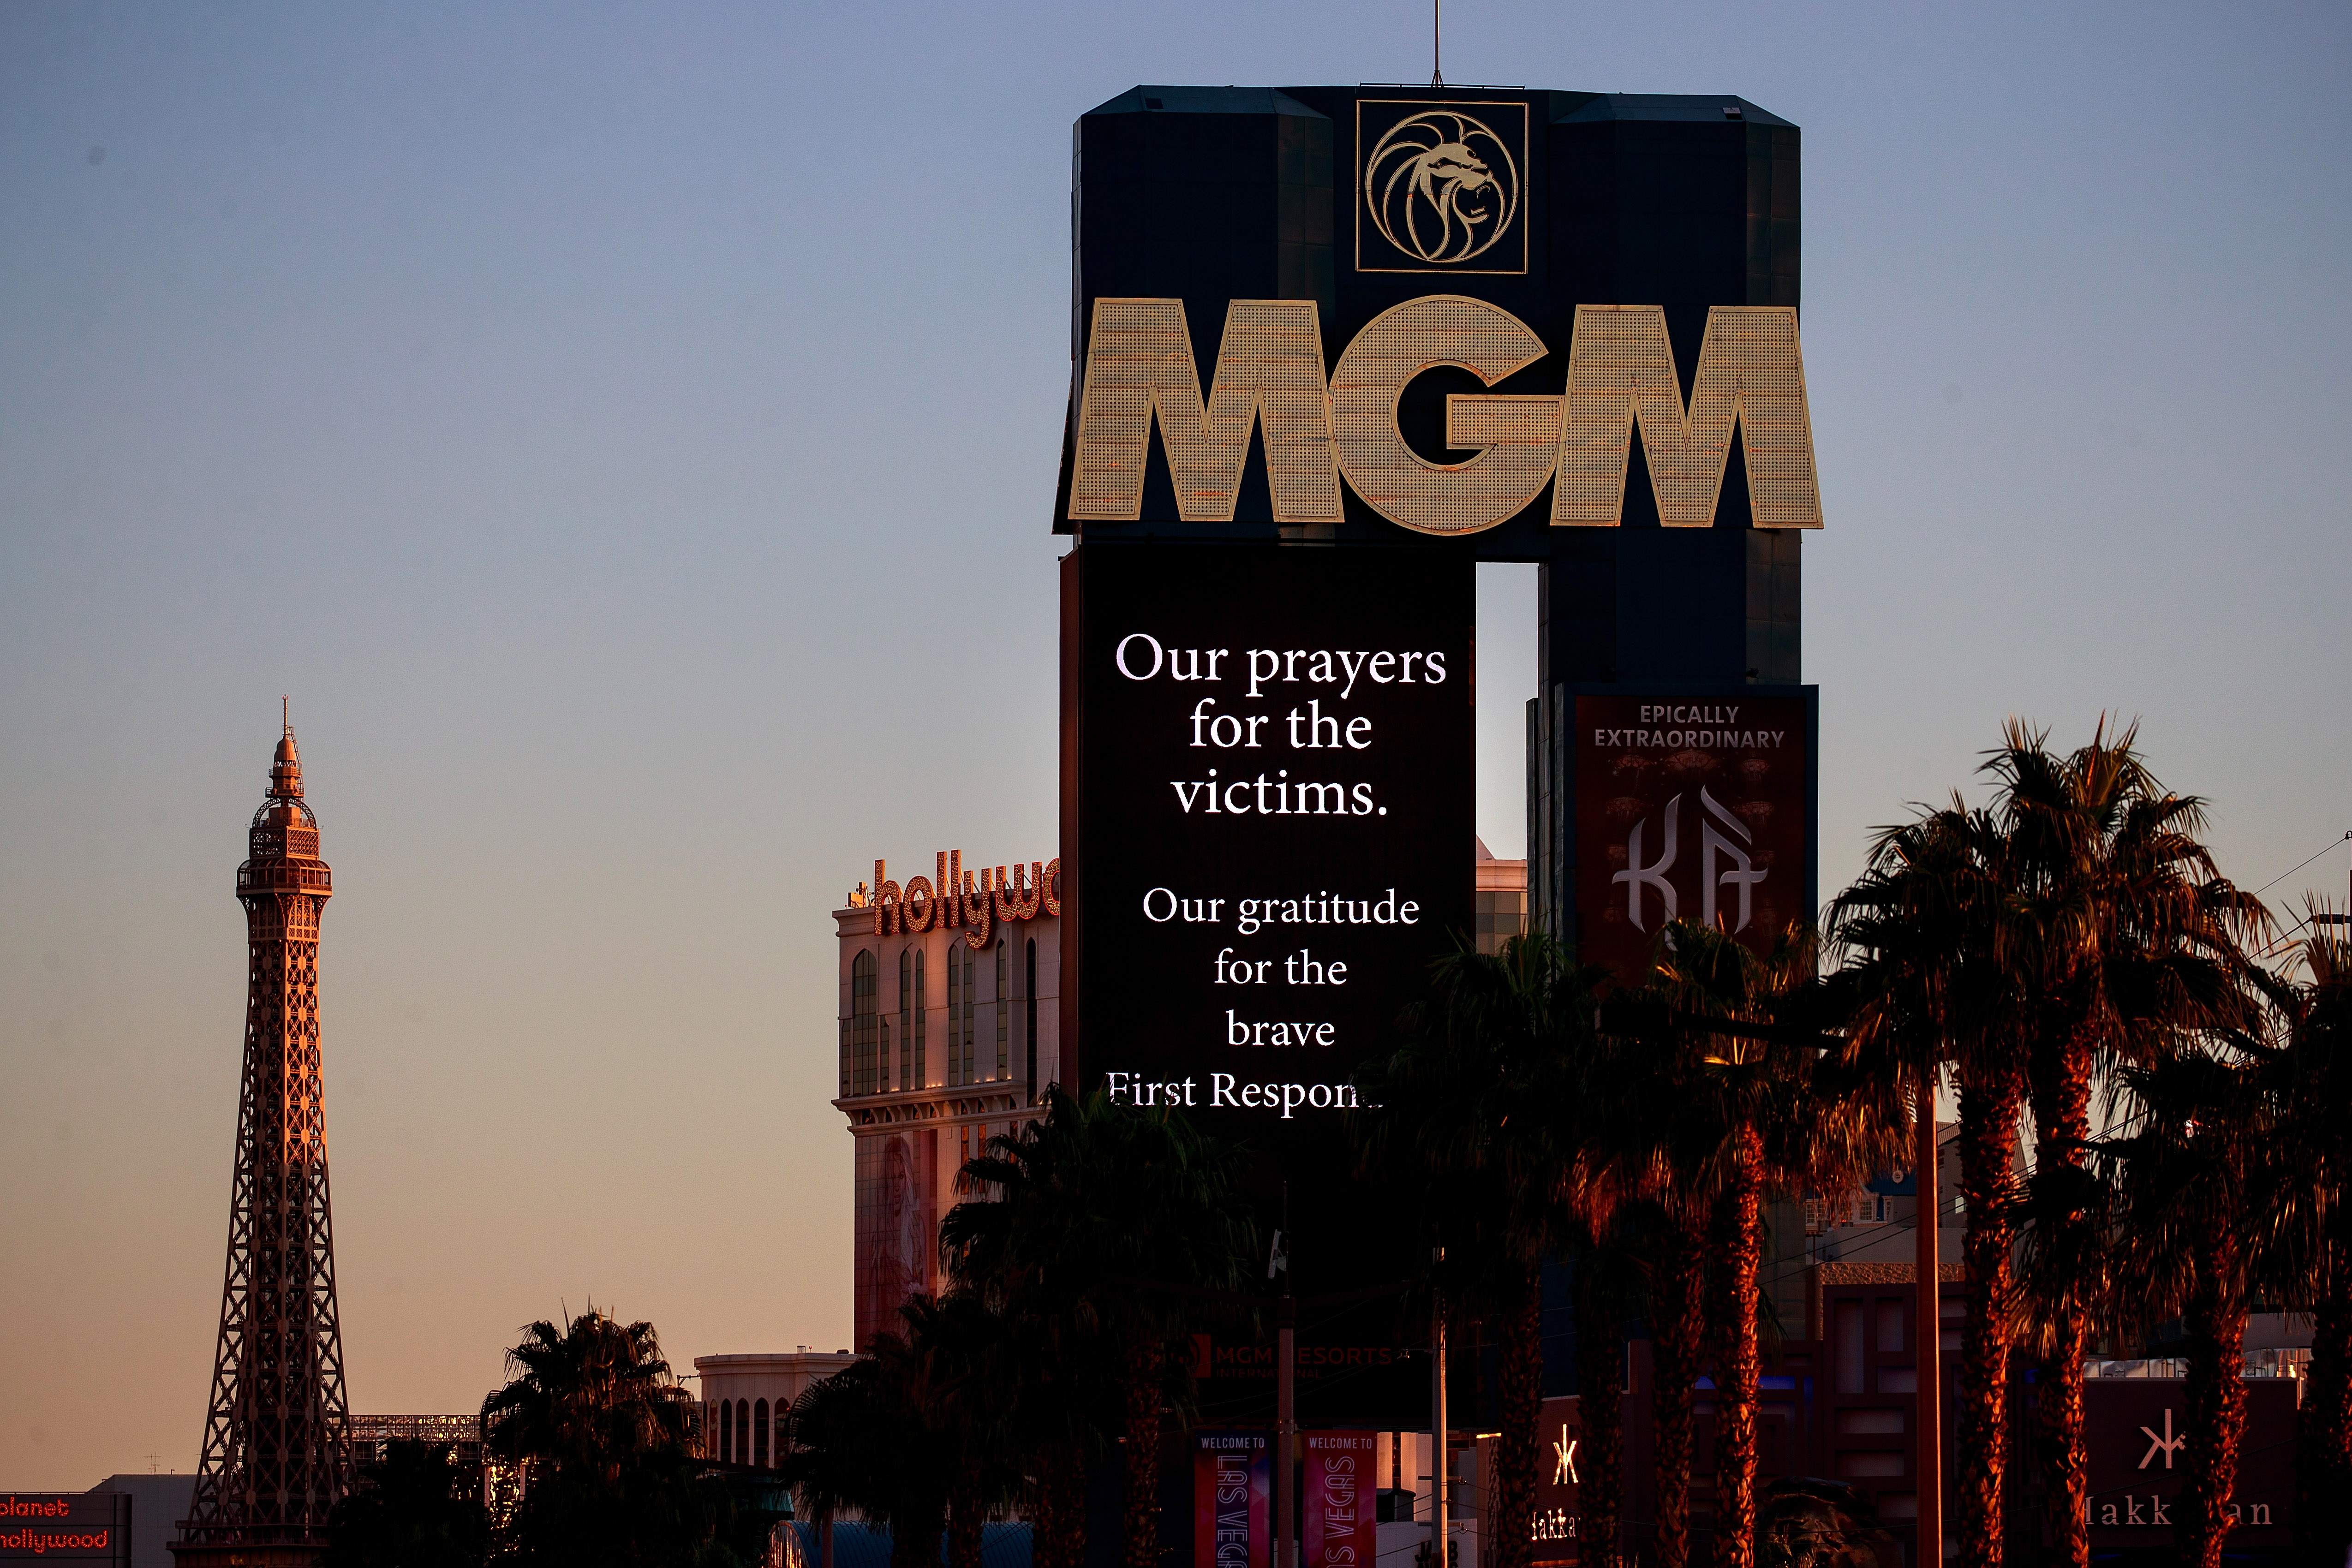 A message of condolences for the victims of Sunday night's mass shooting is displayed on the marquee of the MGM Grand Hotel & Casino, October 3, 2017 in Las Vegas, Nevada.